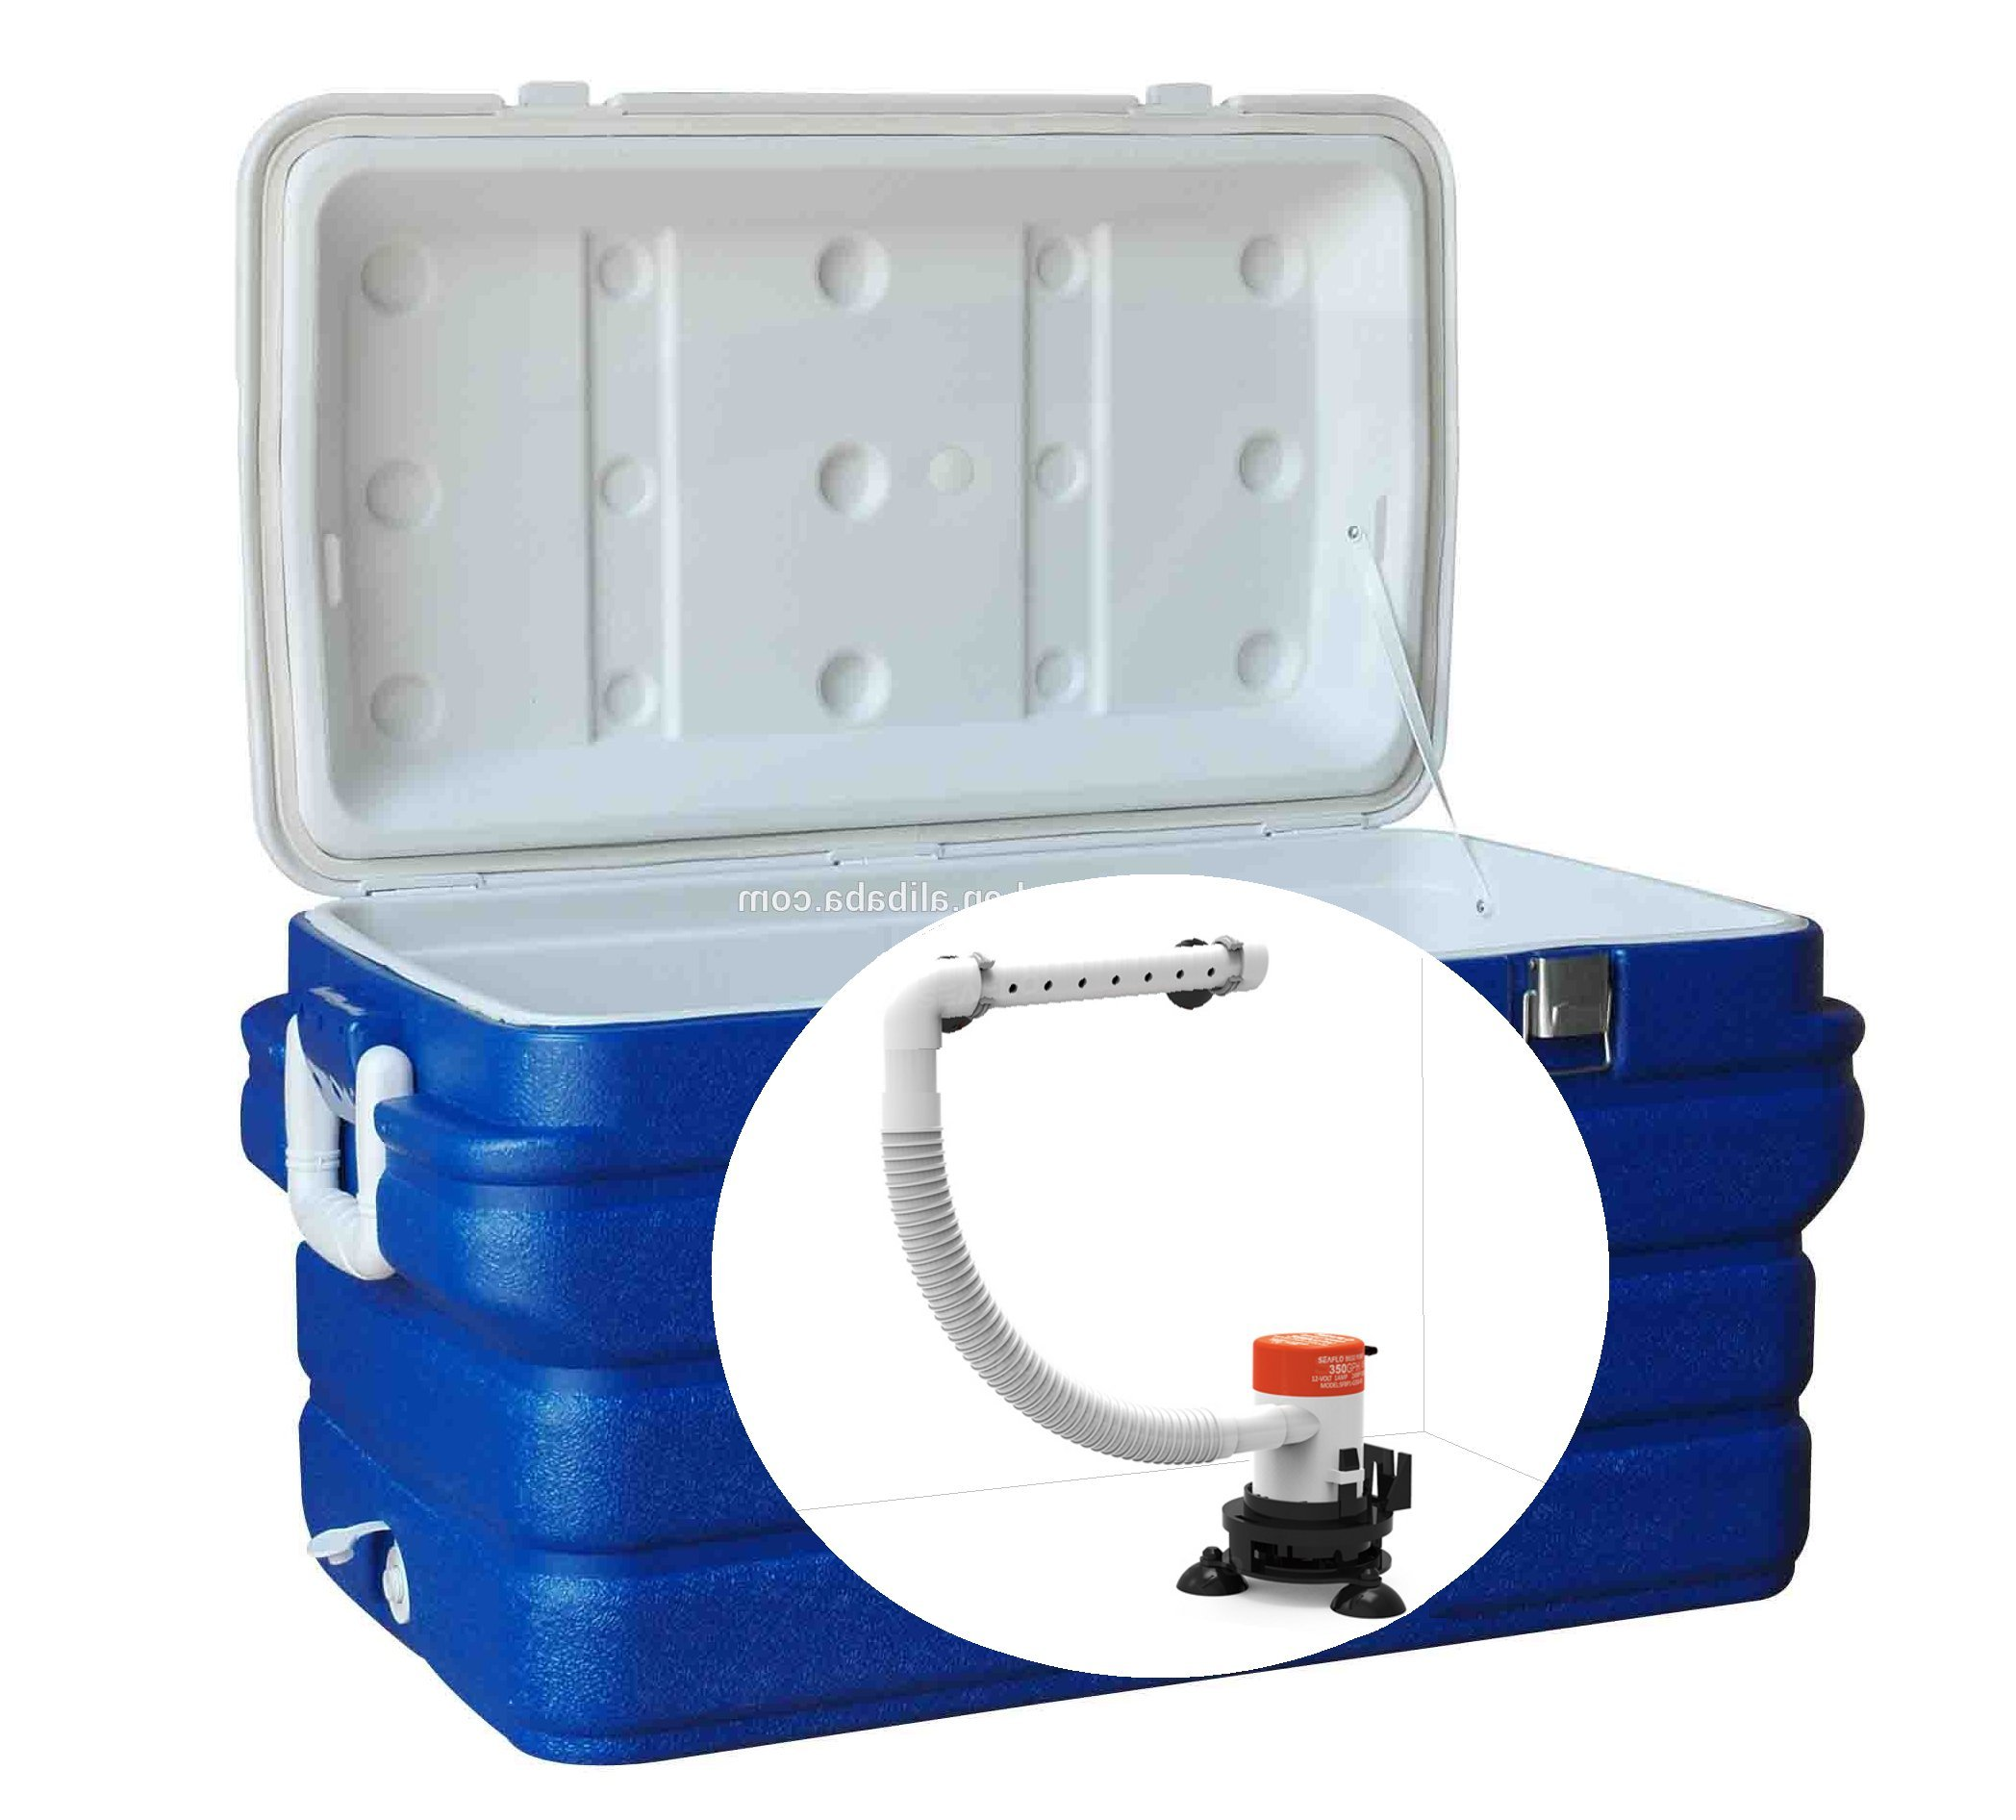 SEAFLO Portable 12v Livewell Aeration Pump System Kit for Boats Coolers Buckets Ice Chest by Seaflo